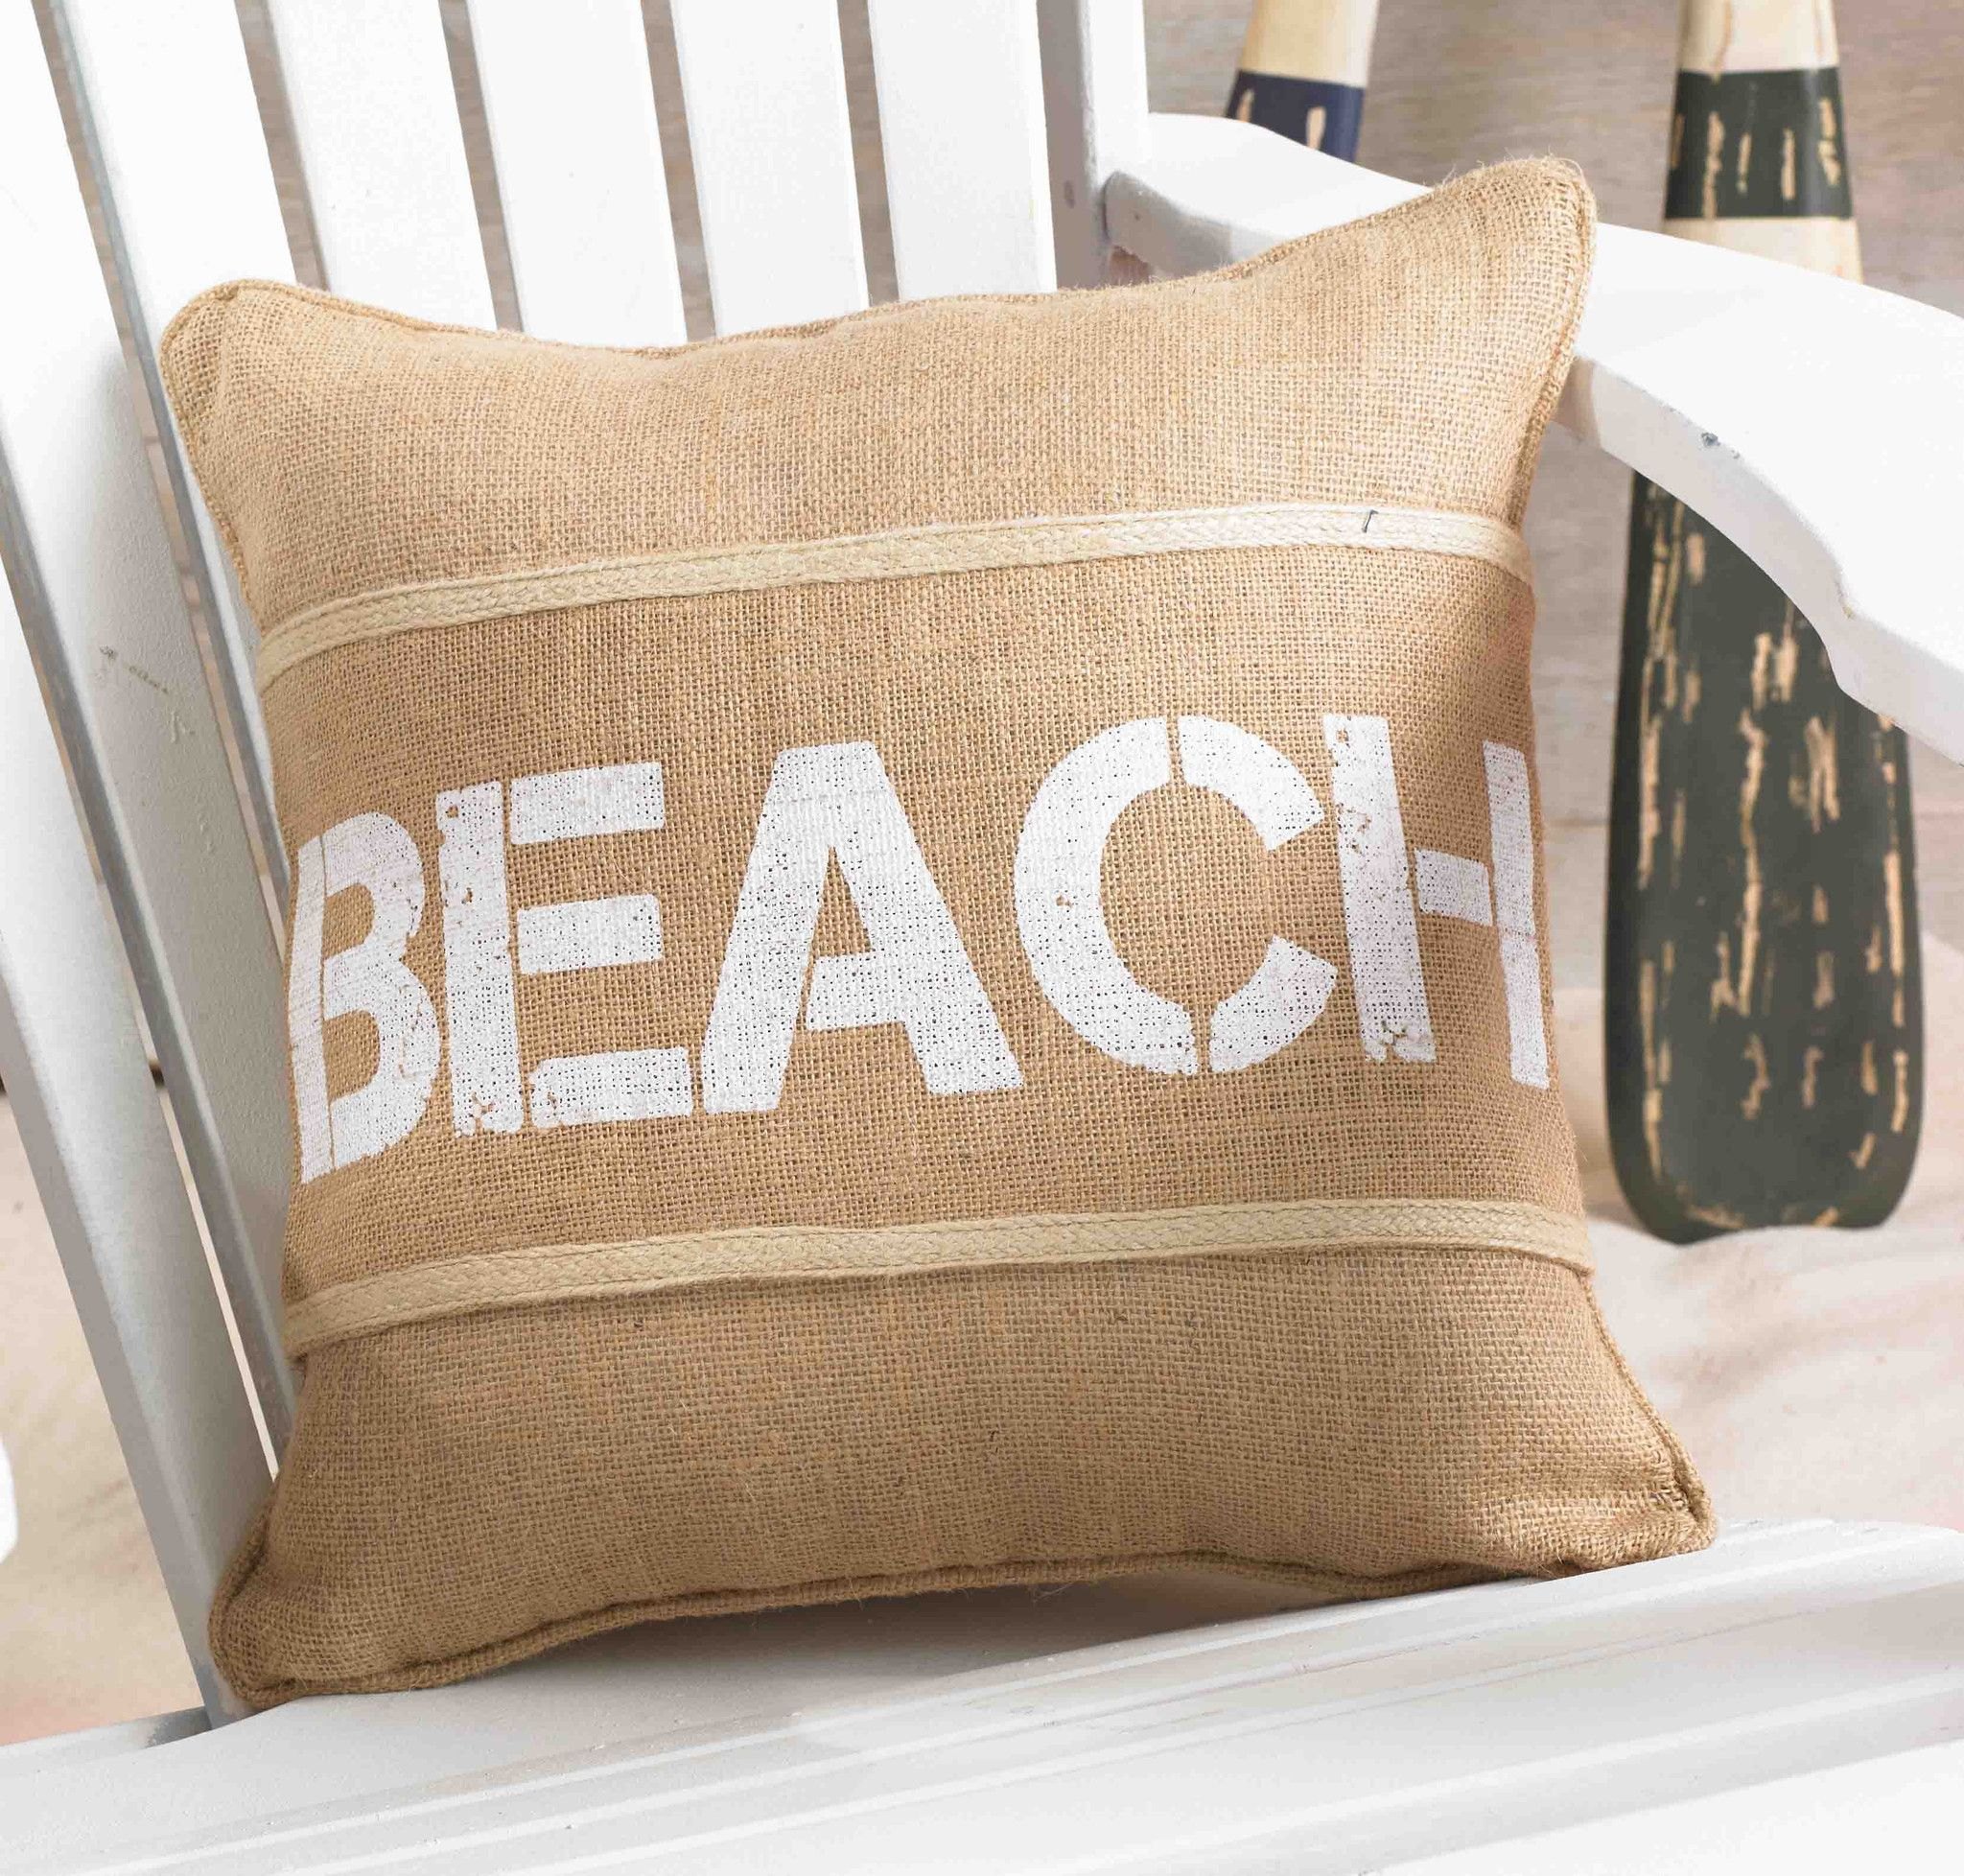 collections mint caia pillows beach stripe bikini com pillow